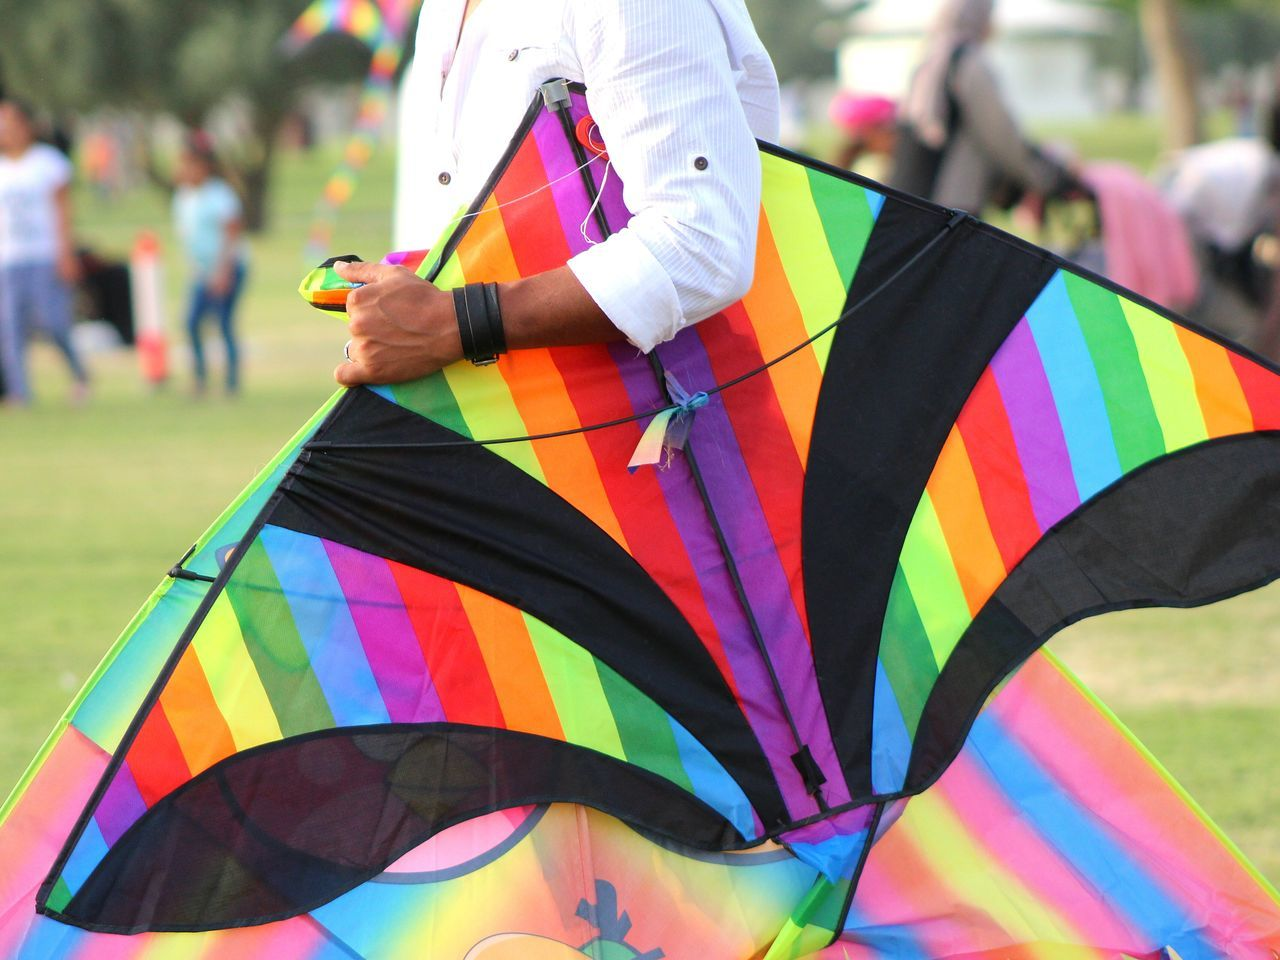 Multi Colored Traditional Festival Celebration Adult People Real People Lifestyles Outdoors One Person Day Kite - Toy Outdoor Activities Kitefestival Kite Springtime